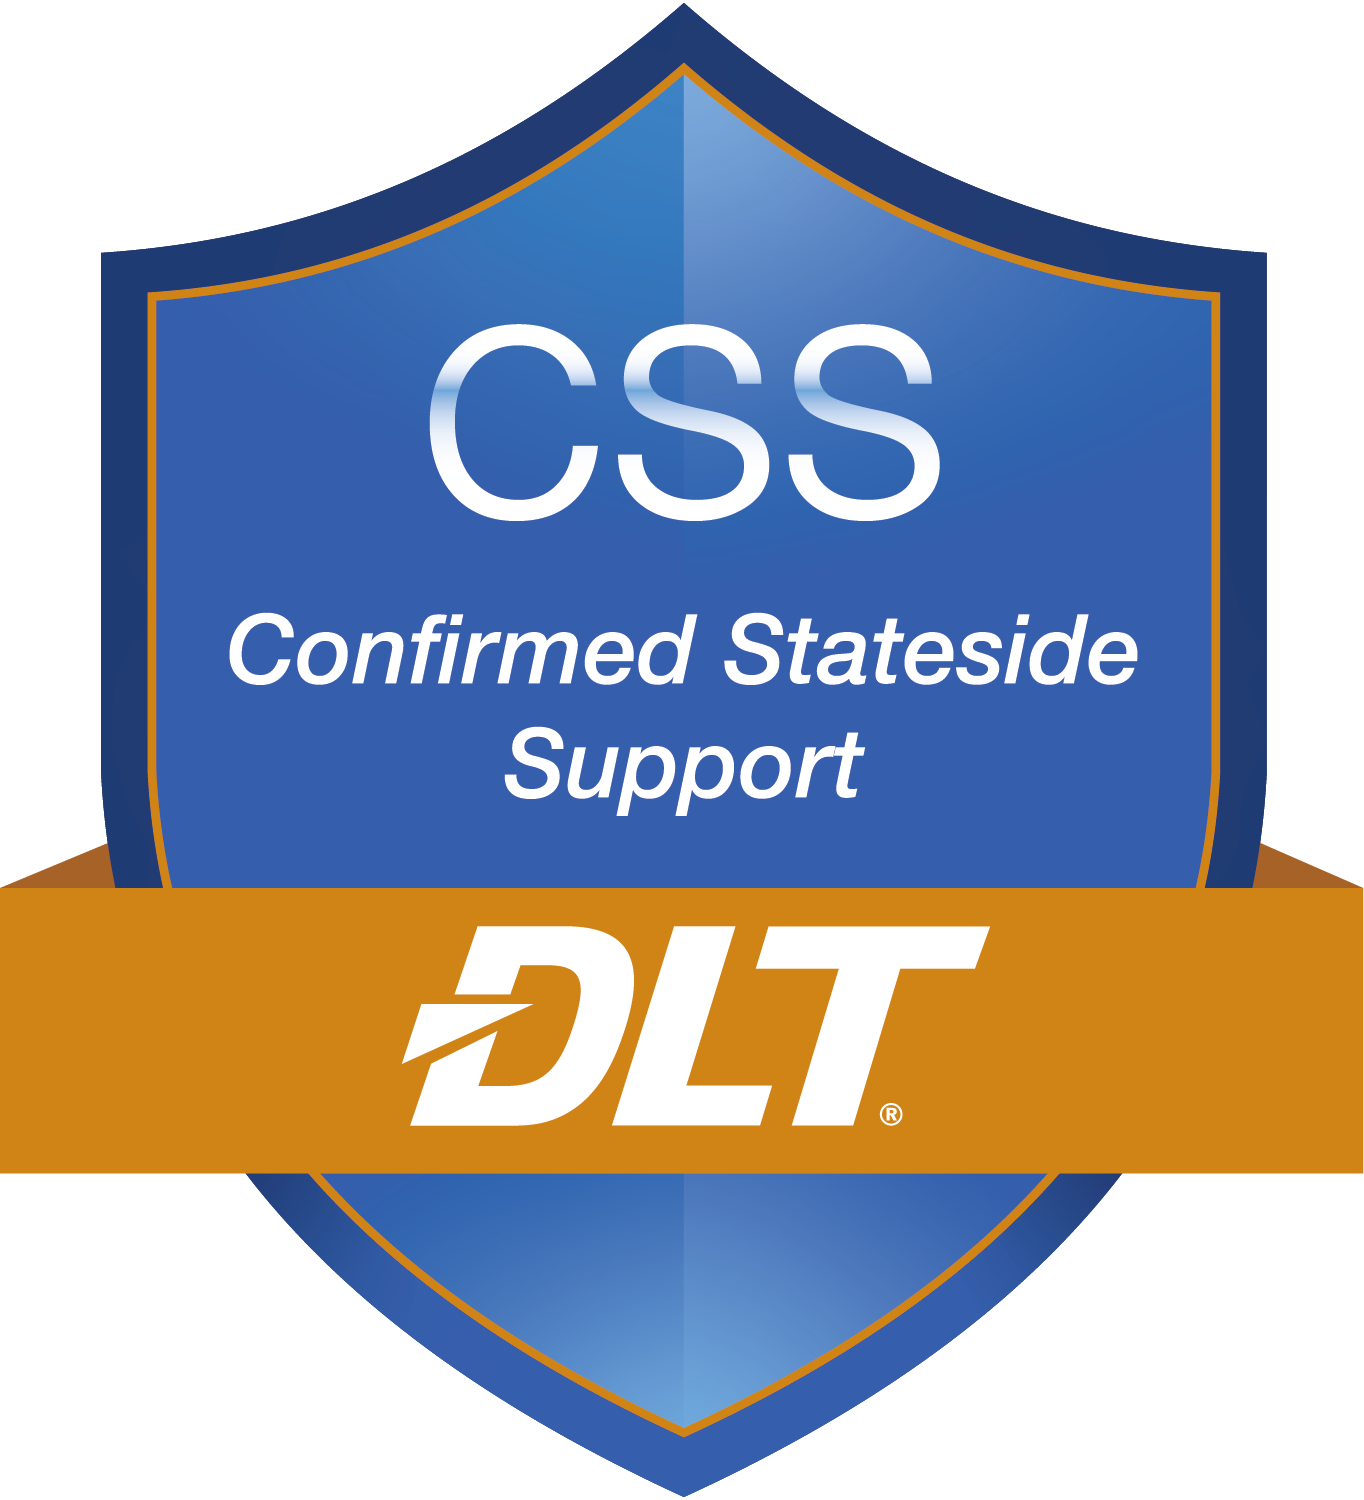 Confirmed Stateside Support badge graphic